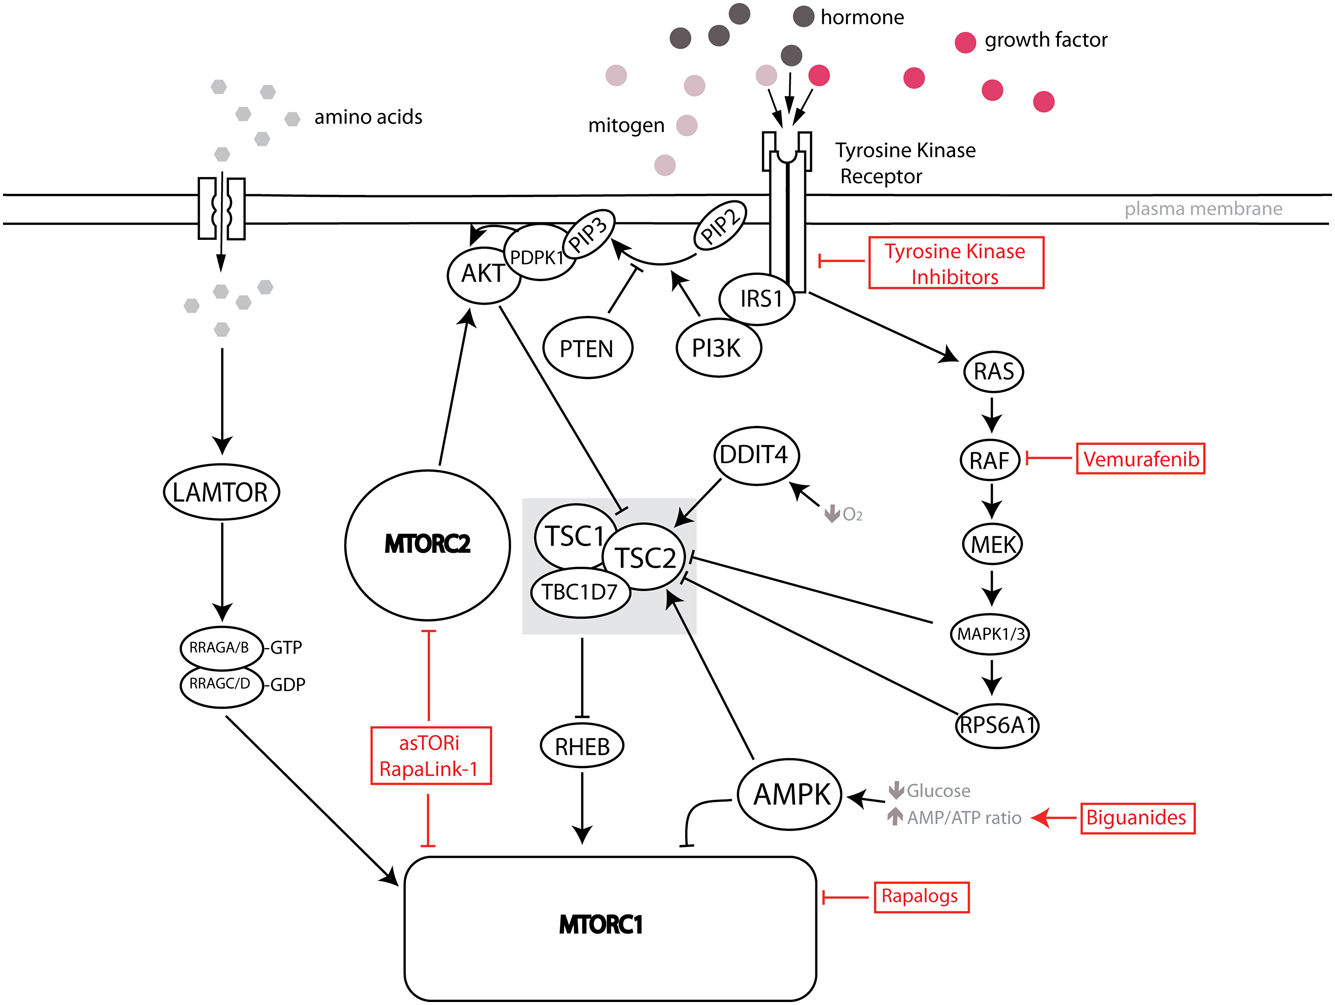 Oncogenic kinases and perturbations in protein synthesis machinery